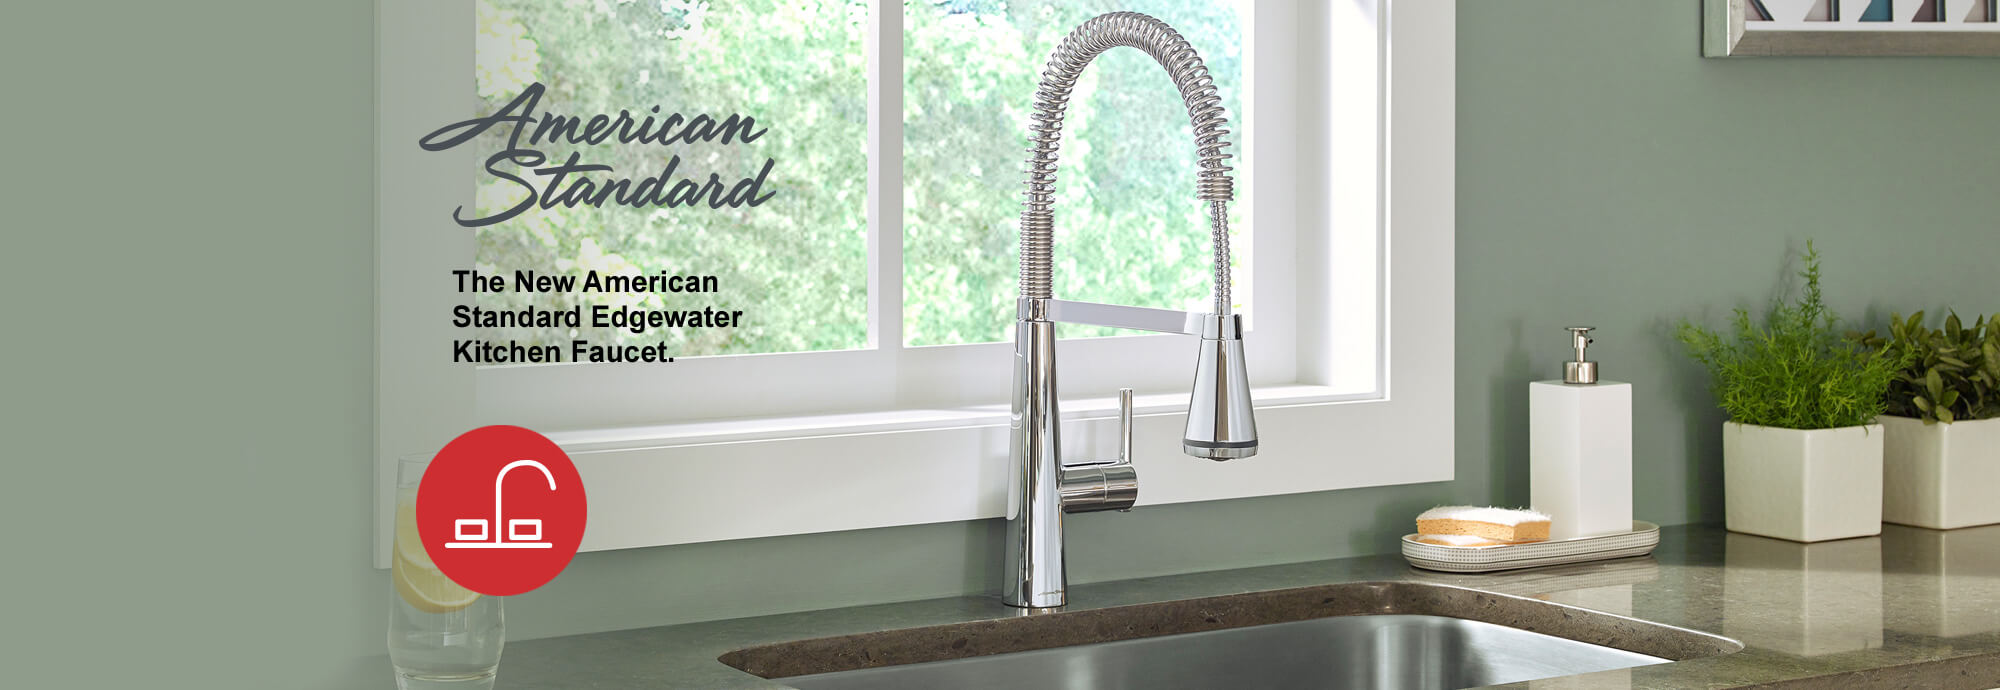 American Standard edgewater kitchen faucet